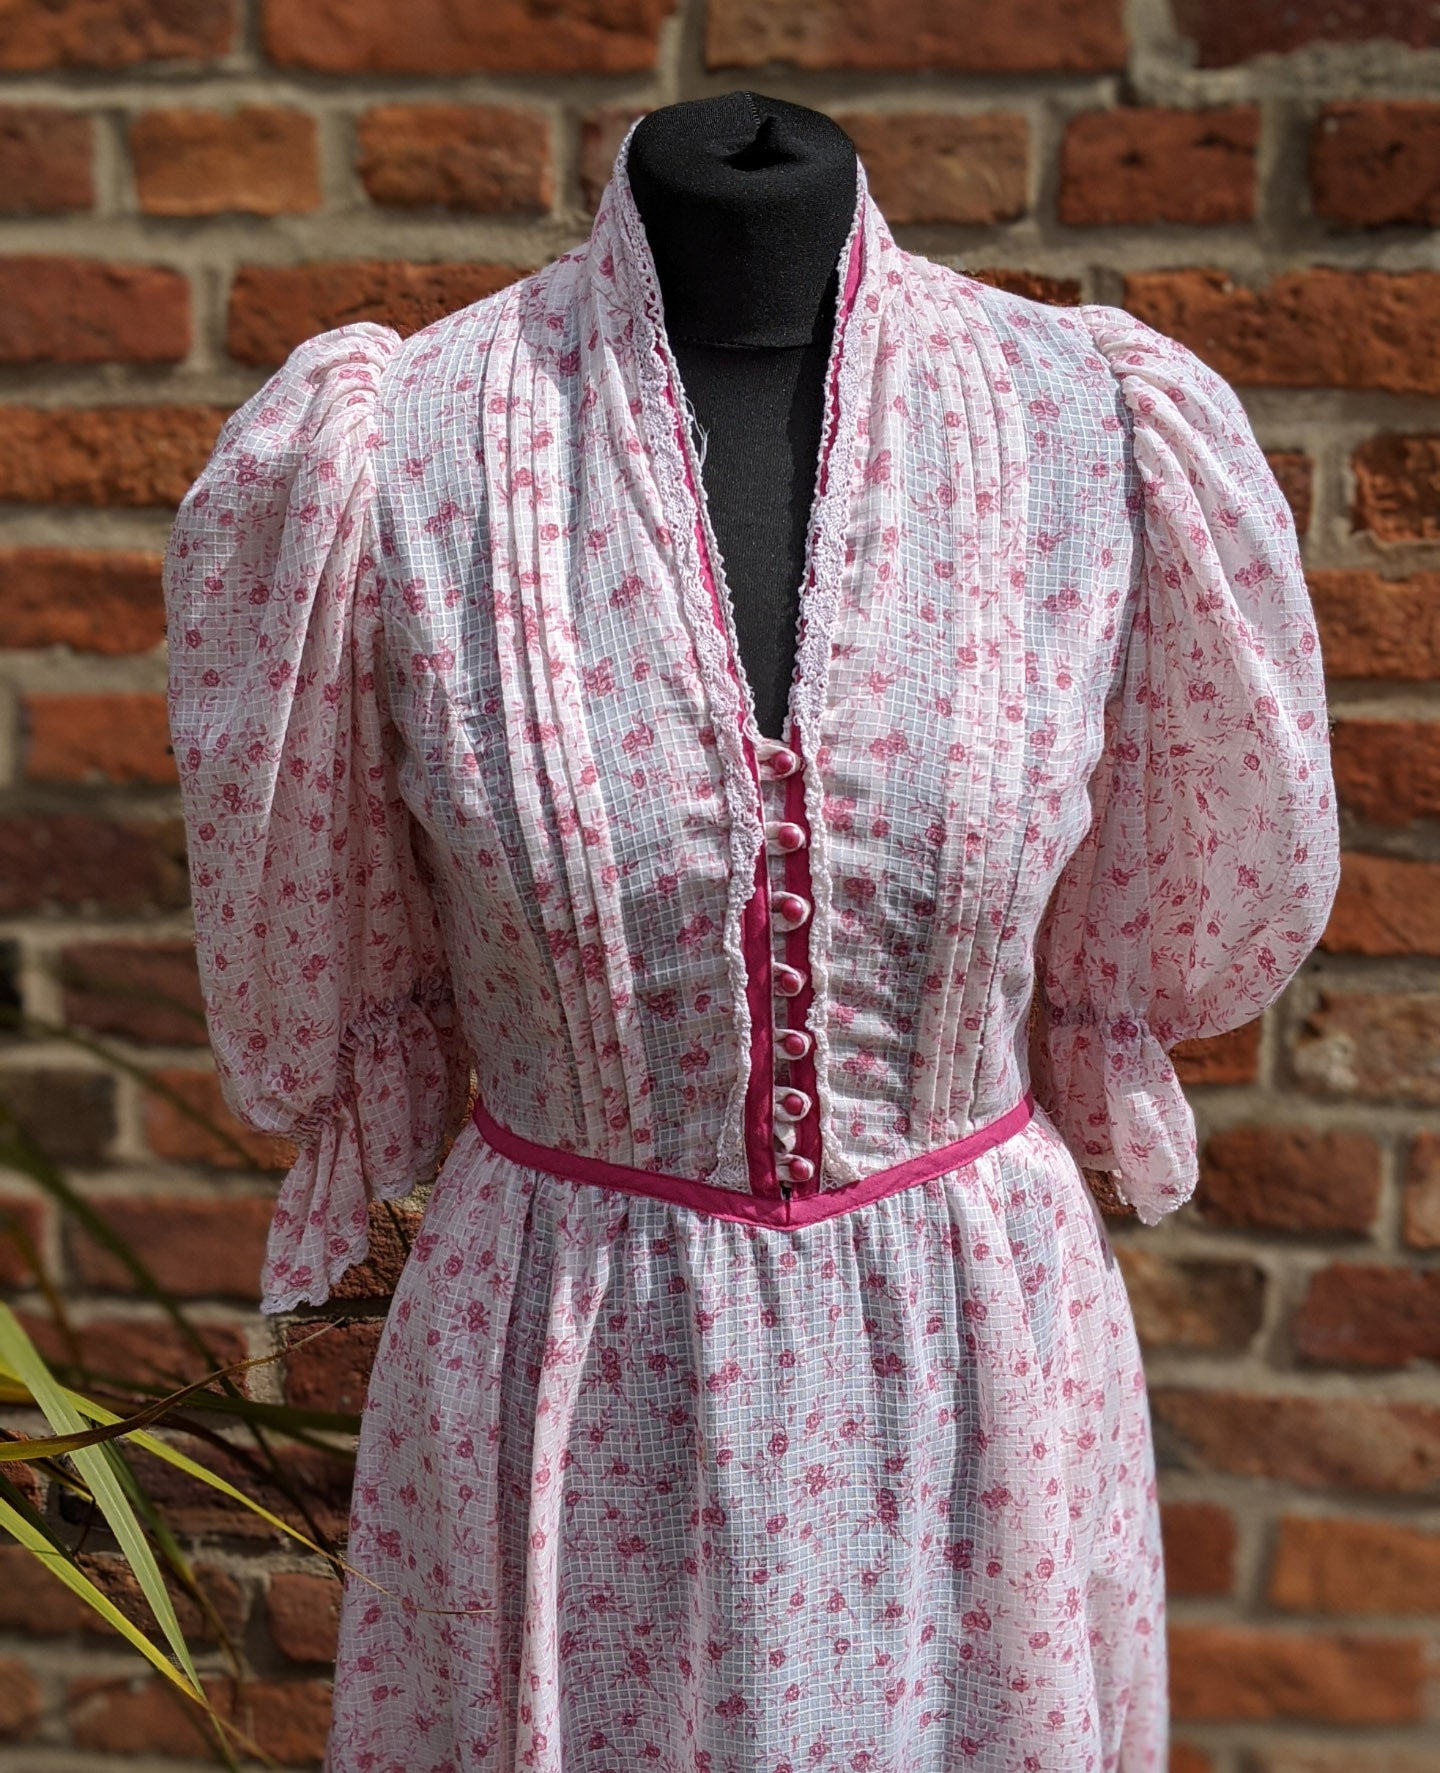 Vintage 70s prairie dress with statement sleeves size 10